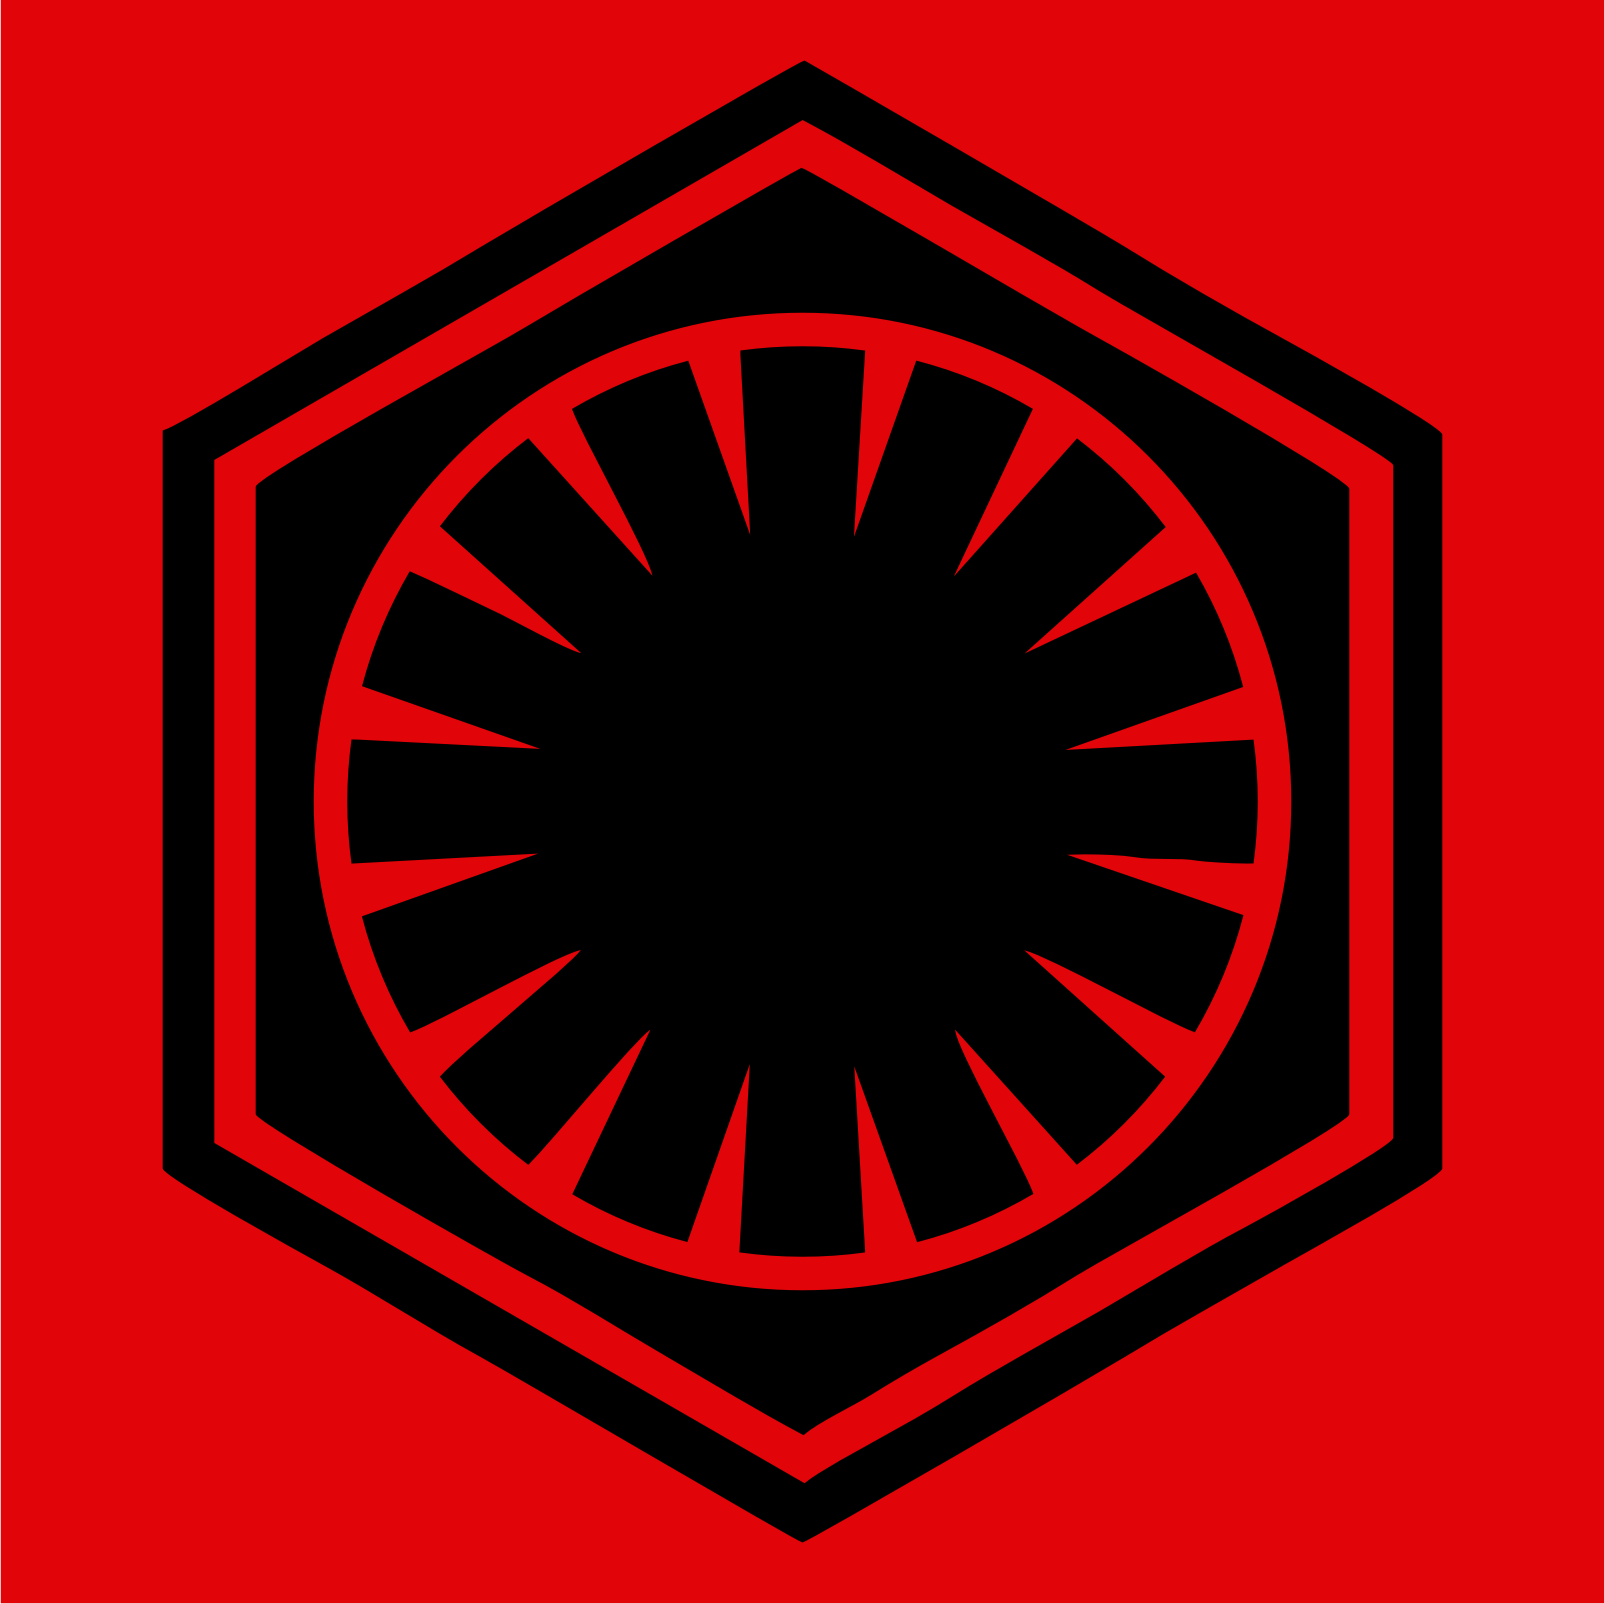 Star Wars The Force Awakens The First Order Logo by OvidiuMUCA on 1604x1604